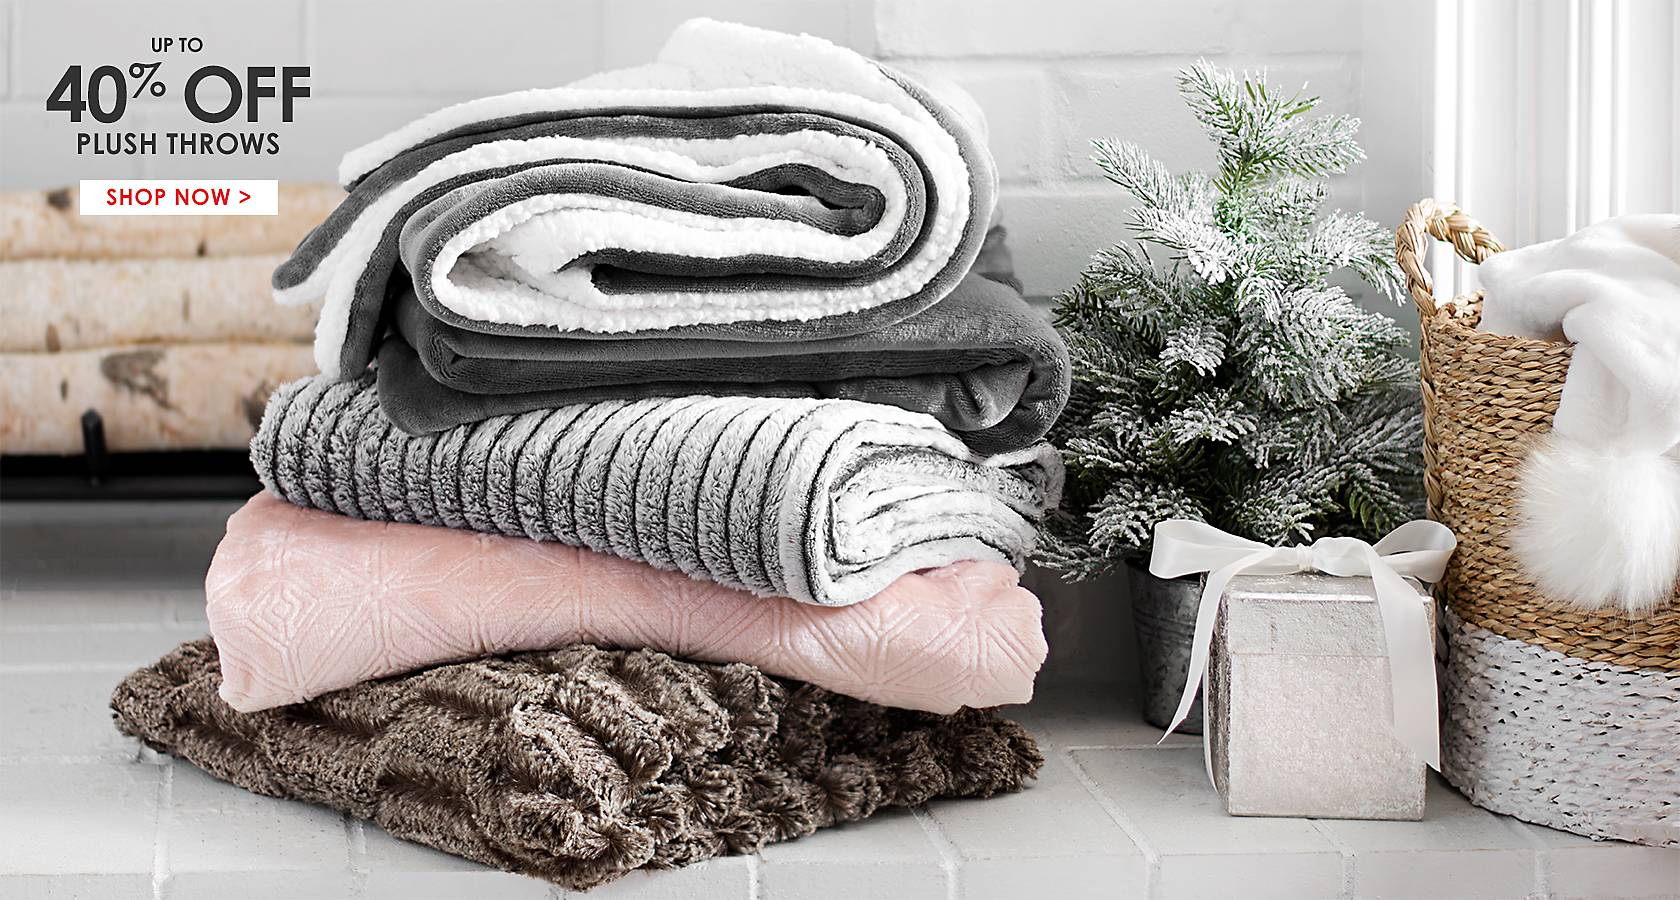 up to 40% Off Throws  - Shop Now